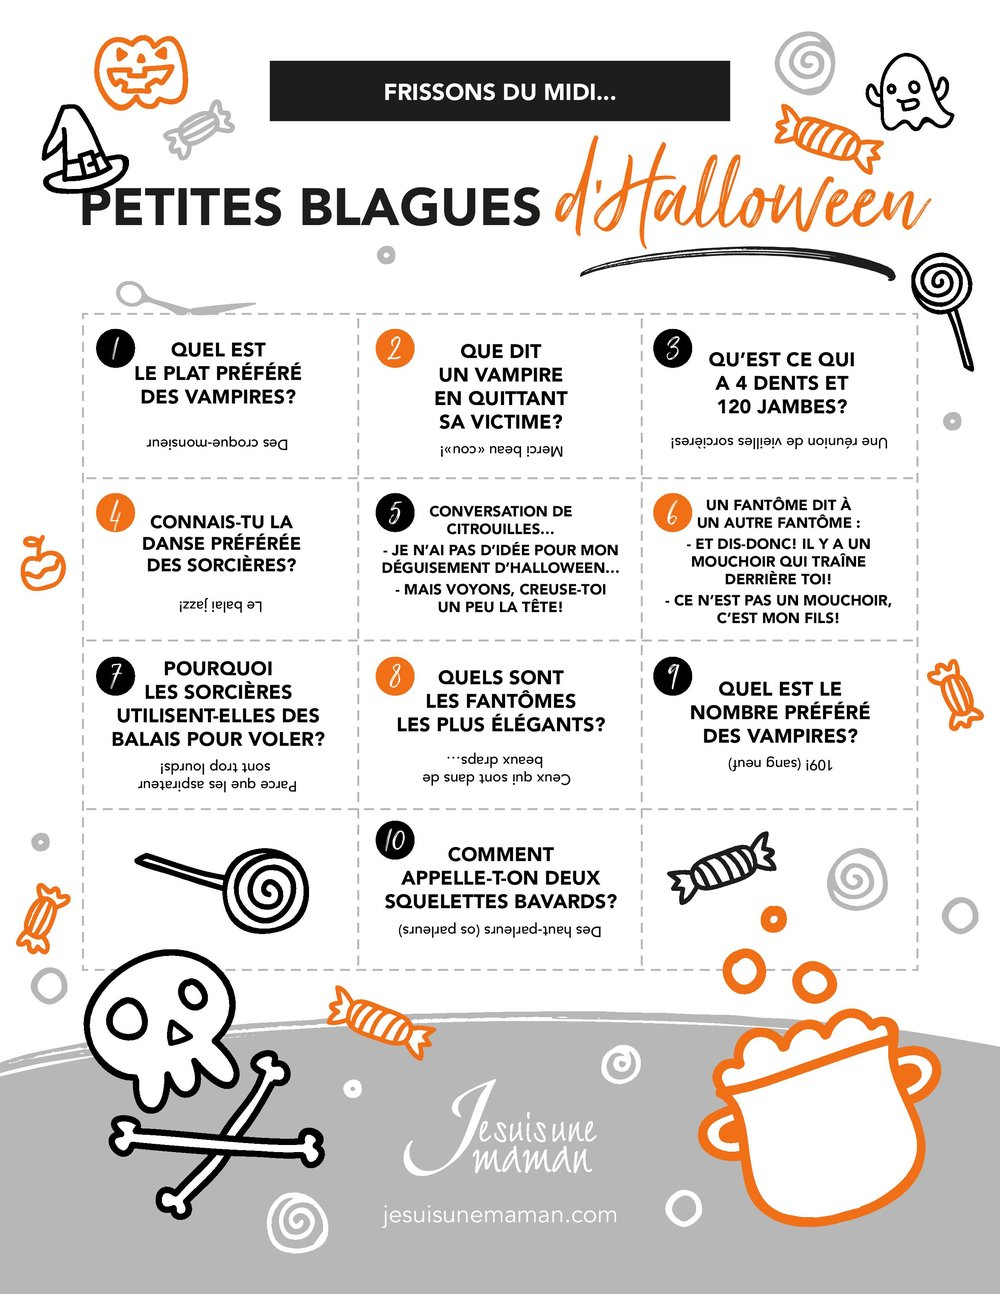 Frisson du midi-blagues-gags-plaisanteries-Blagues d'Halloween-Jokes-Halloween-Rire-S'amuser-plaisanterie d'Halloween-Octobre-enfants-parents-Je suis une maman